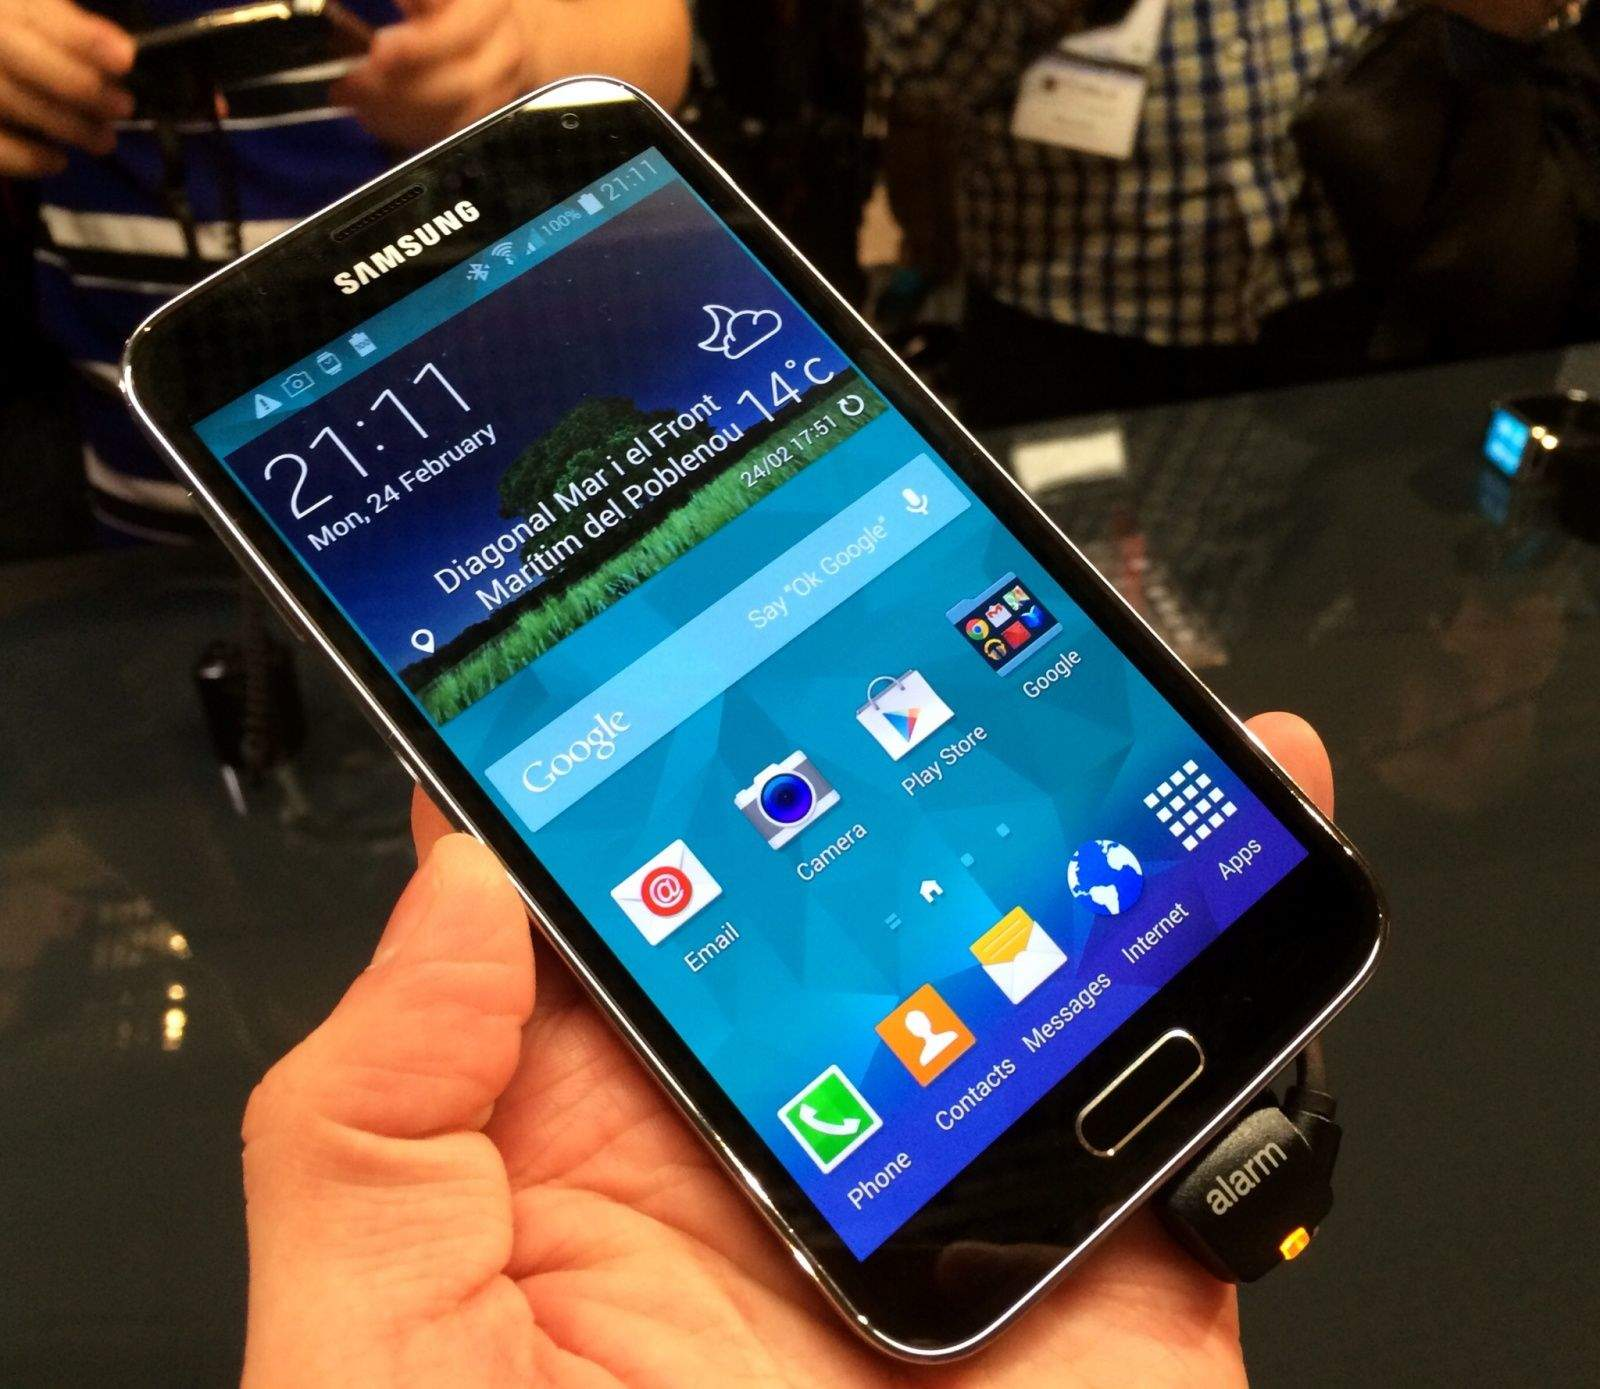 Samsung galaxy s5 unveiled - Samsung Is Known To Pre Load A Lot Of Applications A K A Bloatware On Its Galaxy Devices When The Galaxy S4 Was Unveiled Last Year The Company Received A